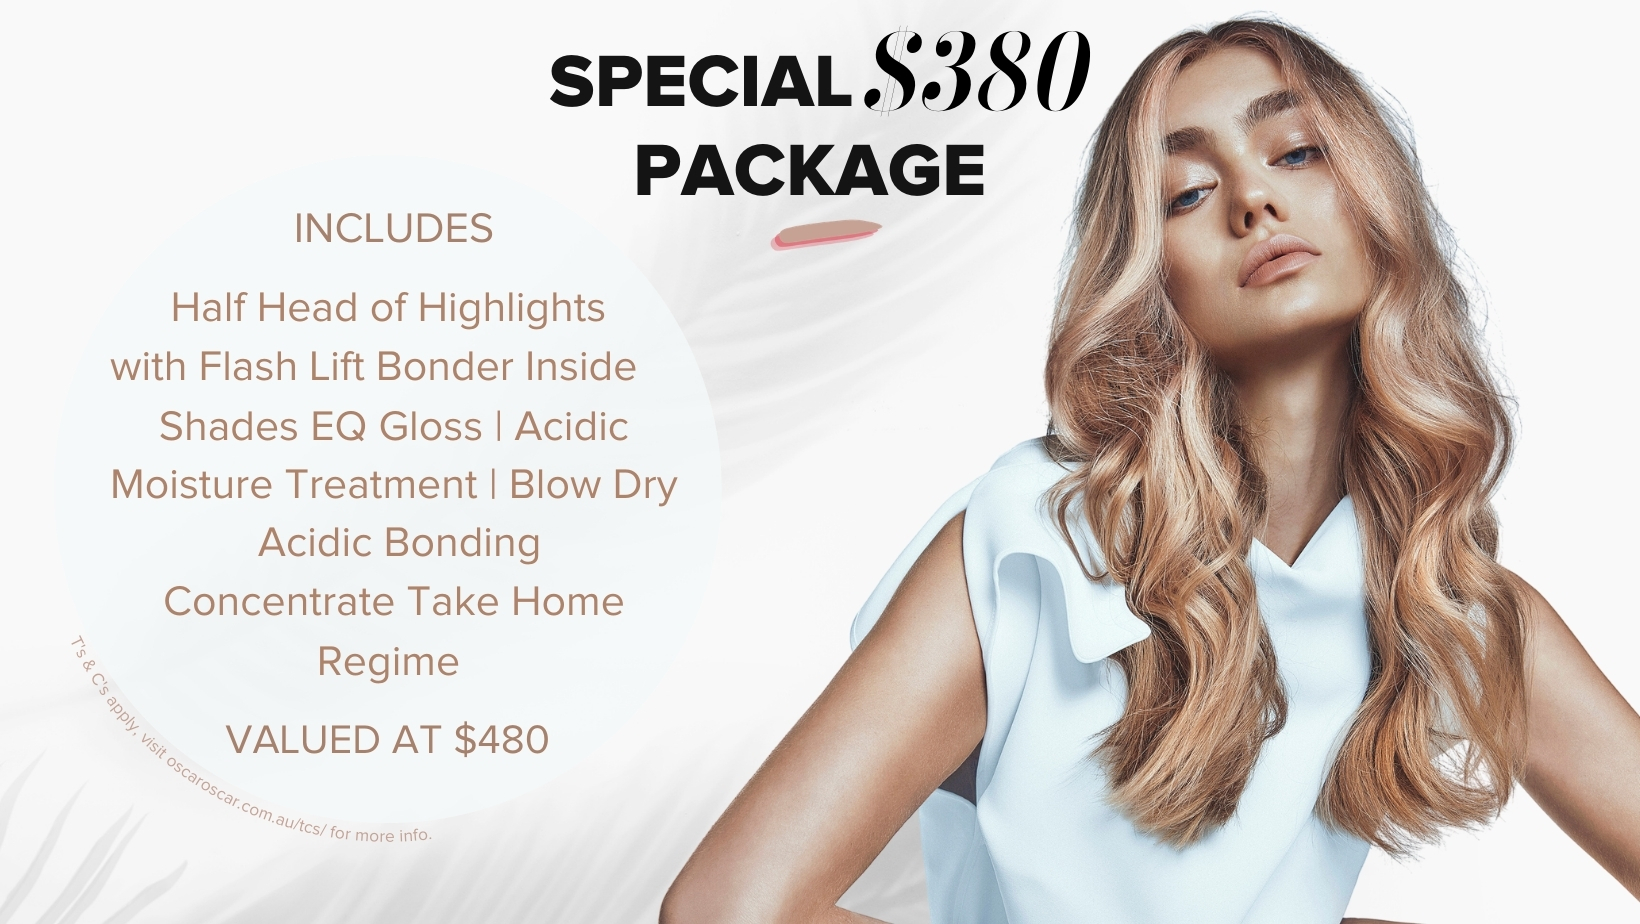 blonde hair promotion special offer